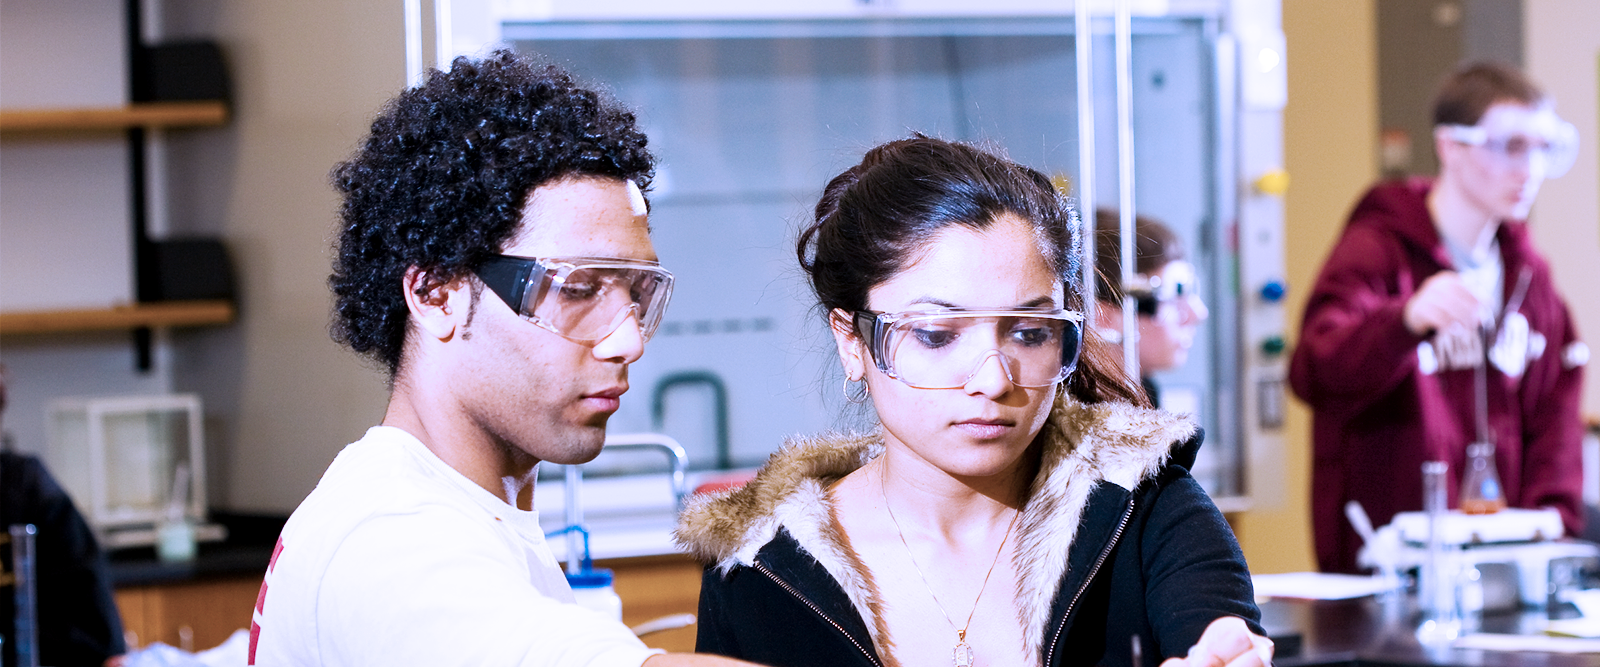 Two undergraduate students work together in an Integrated Sciences Building lab